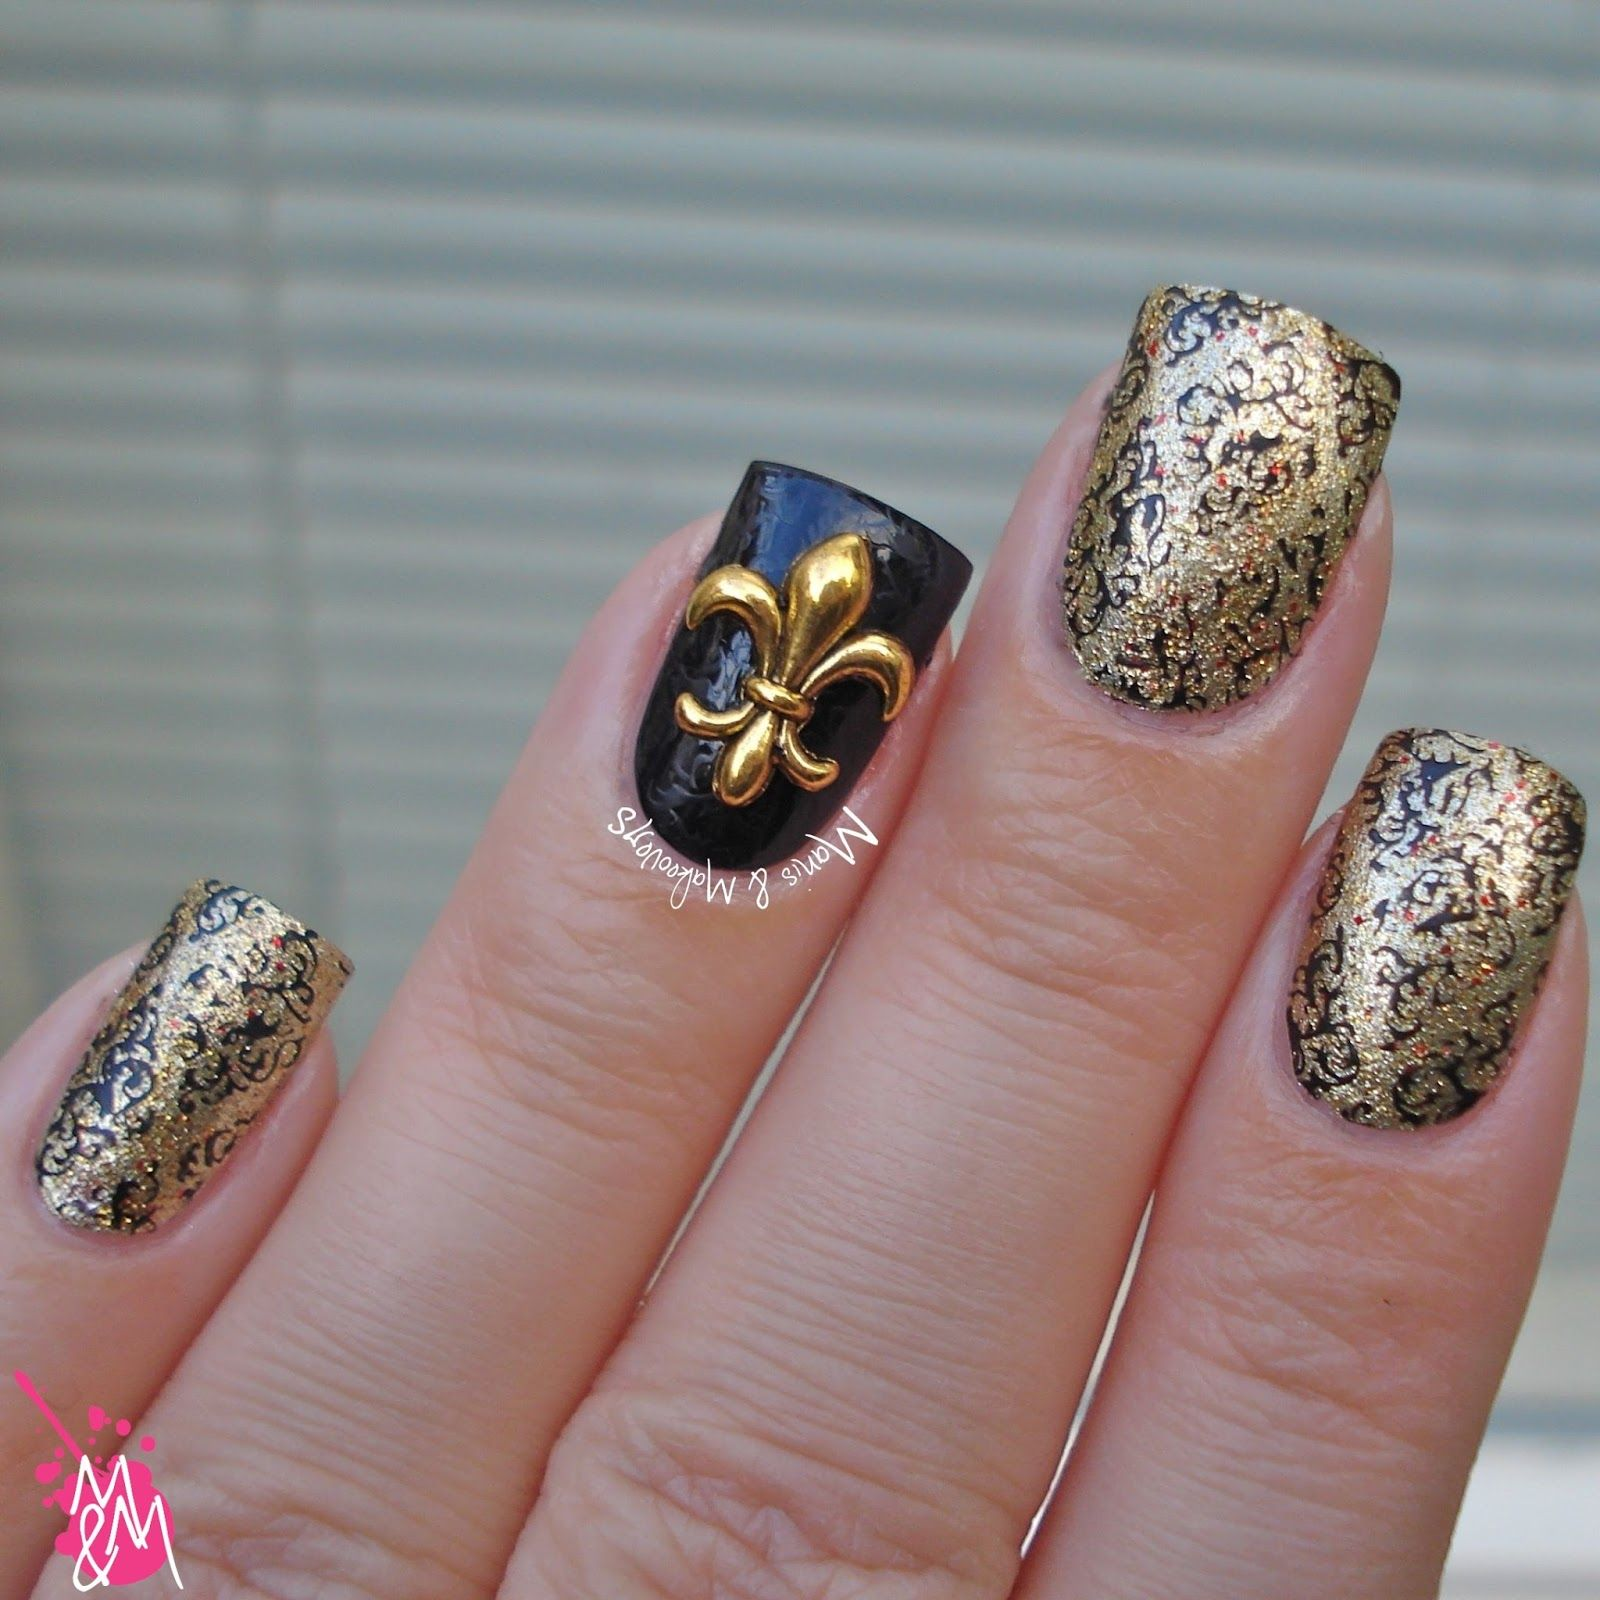 LadyQueen Fleur-De-Lis Charm  http://www.ladyqueen.com/1pc-punk-rock-heart-cross-army-flower-metal-alloy-3dnail-decoration-nail-sticker-nail-art-na0598.html